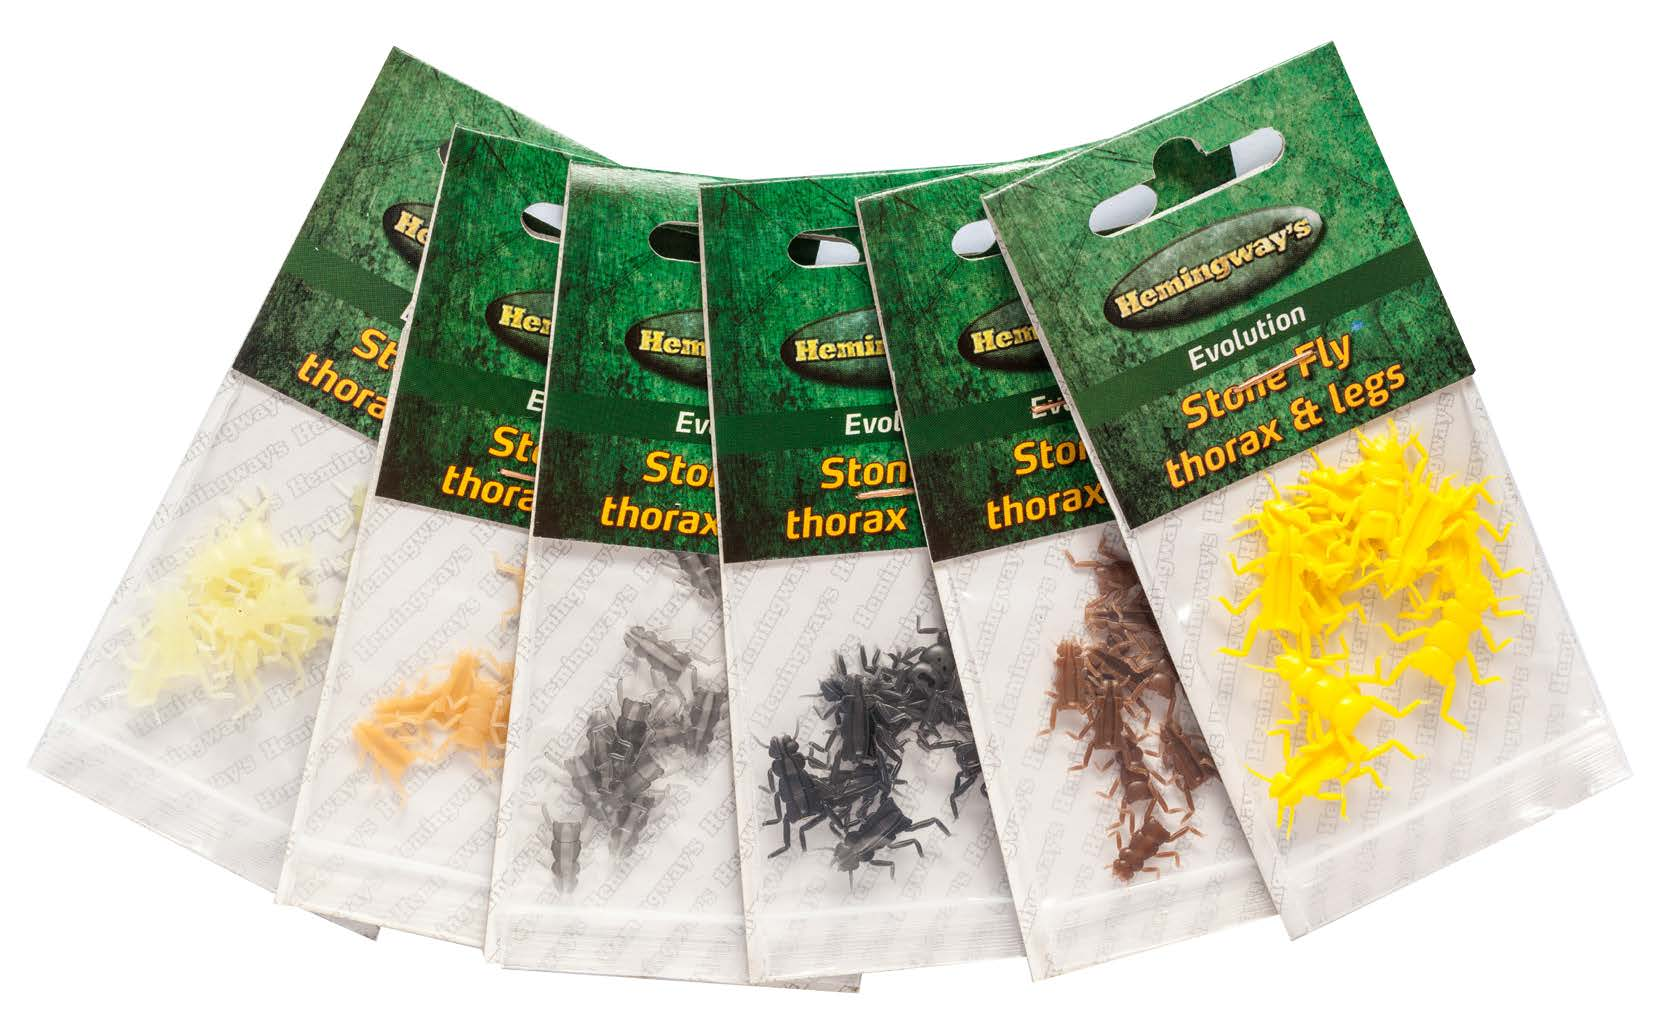 Hemingway - Evolution Stone Fly Thorax & Legs - Large - Yellow